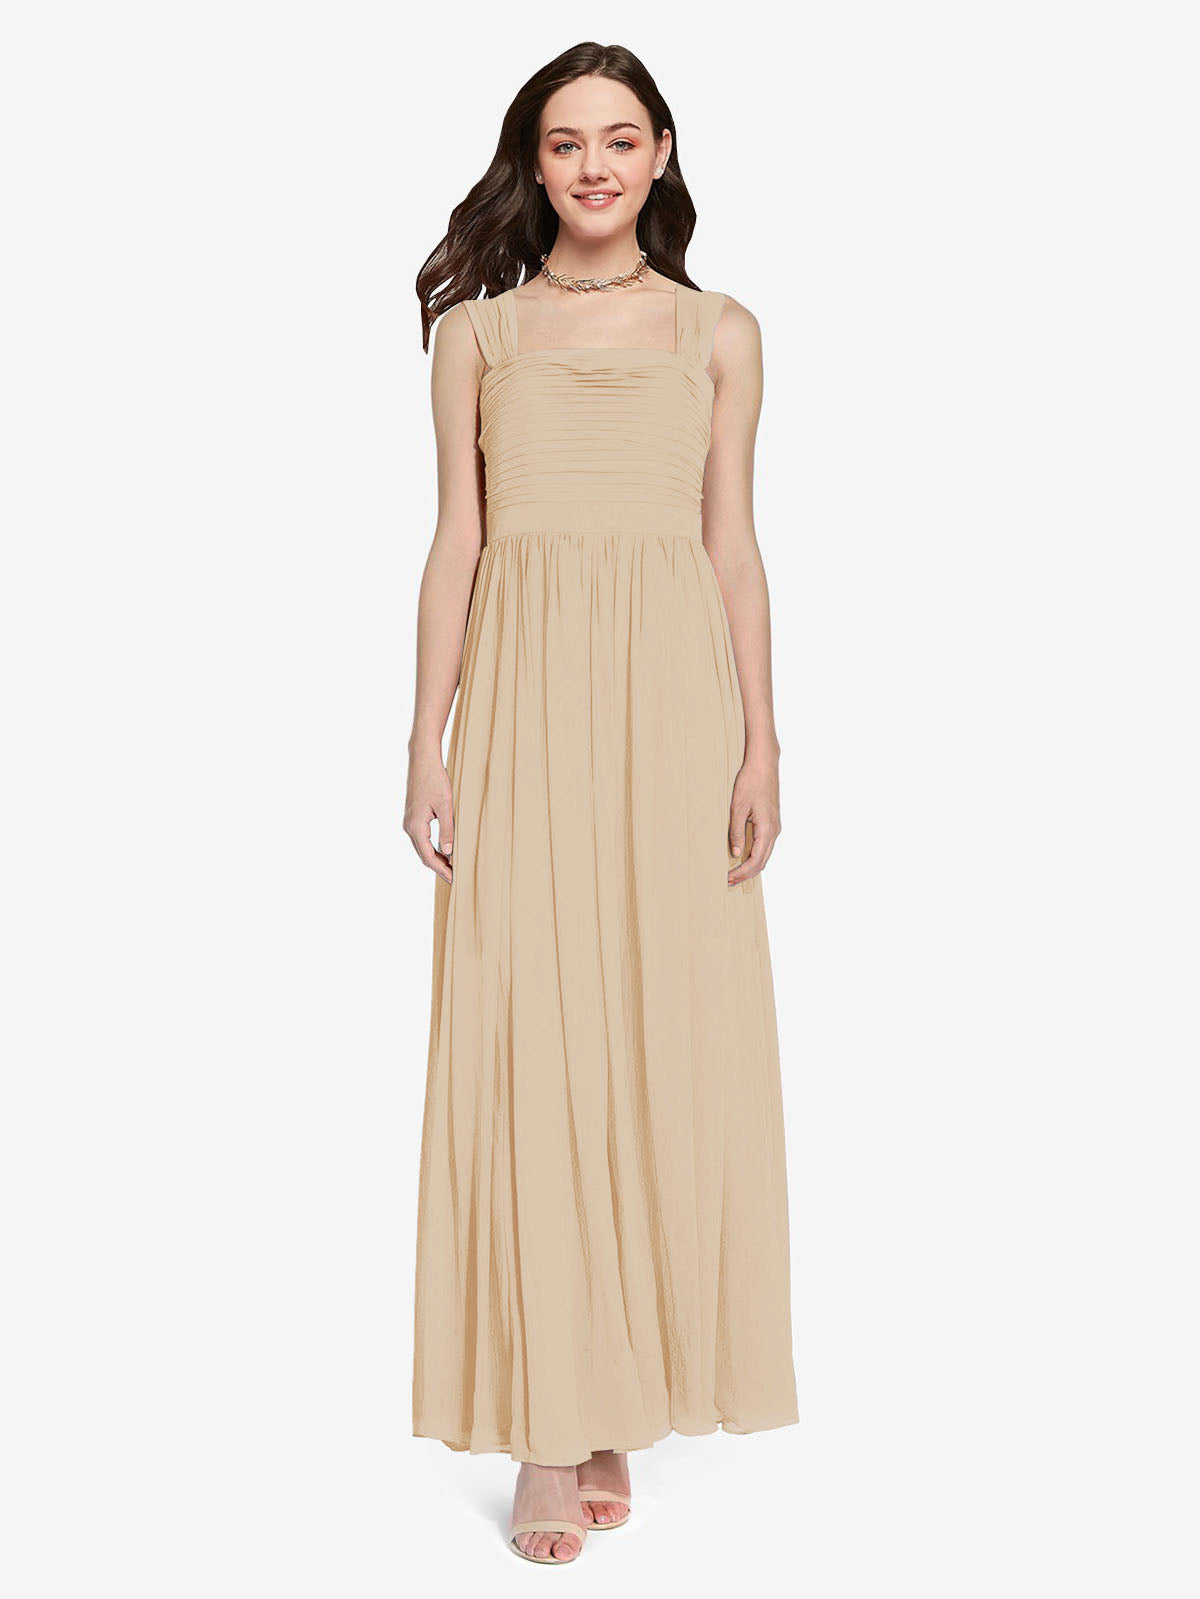 Long A-Line Square Sleeveless Champagne Chiffon Bridesmaid Dress Aldridge